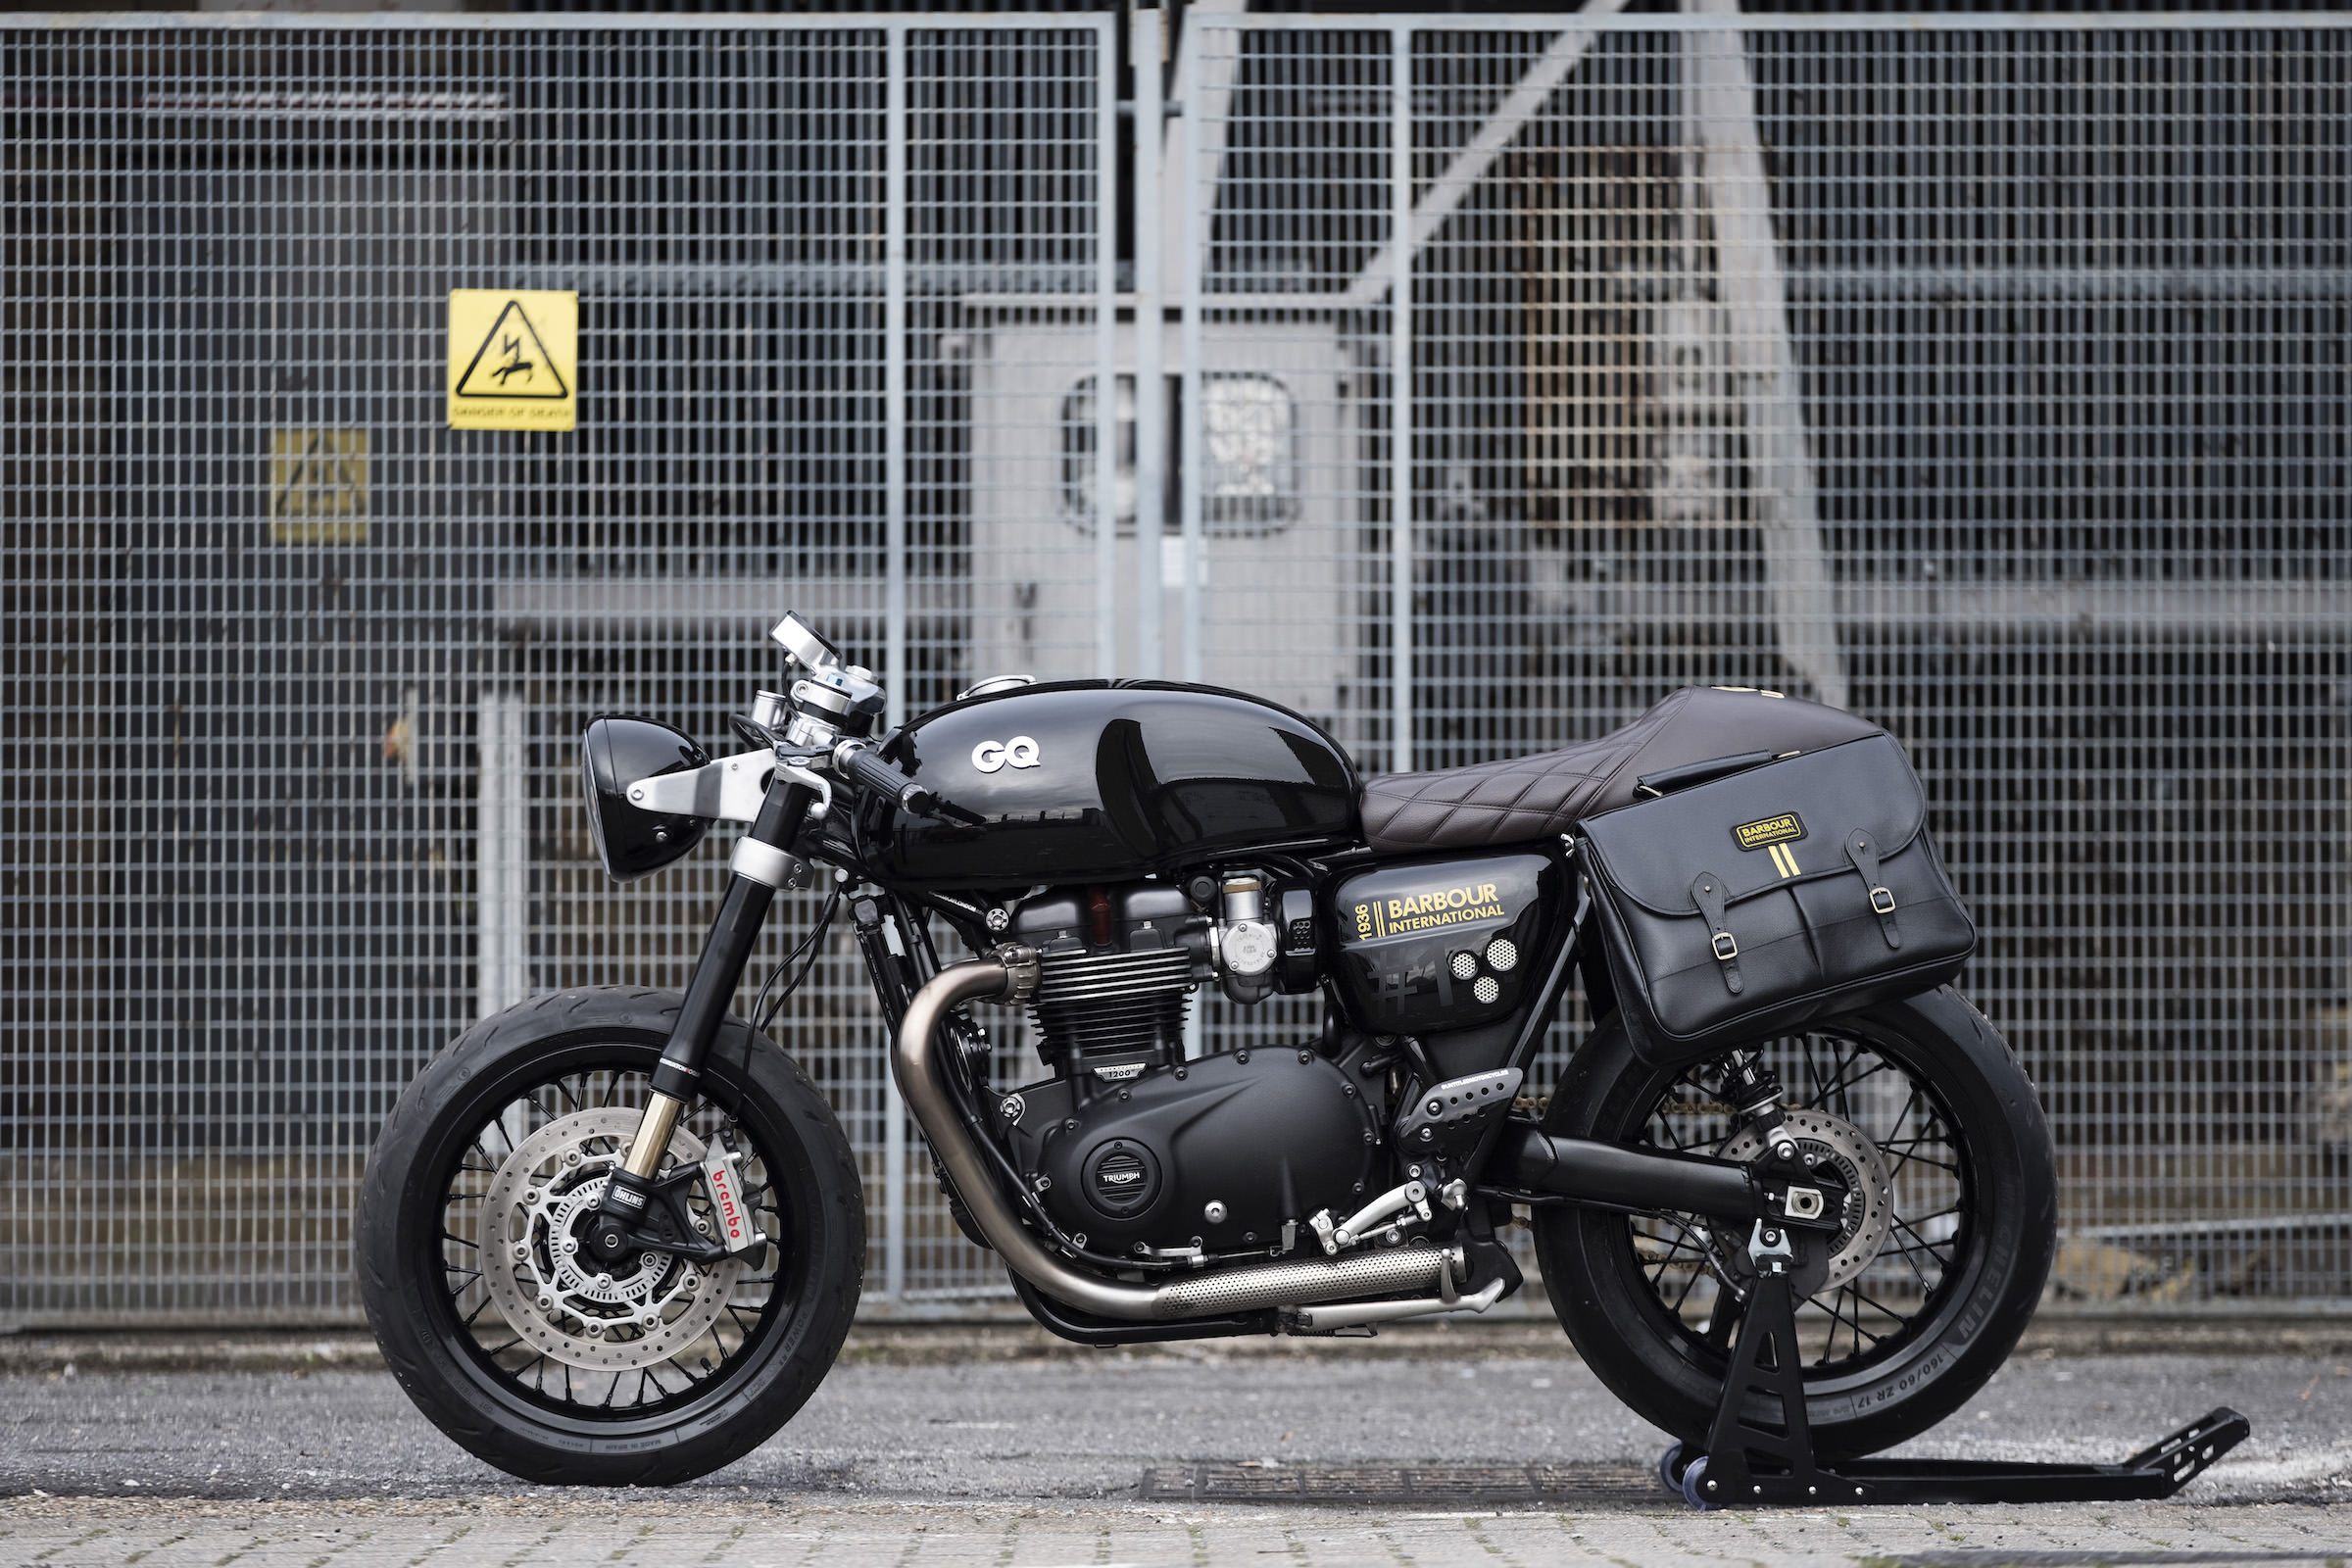 the gq x barbour x untitled motorcycles triumph thruxton 1200 r. Black Bedroom Furniture Sets. Home Design Ideas